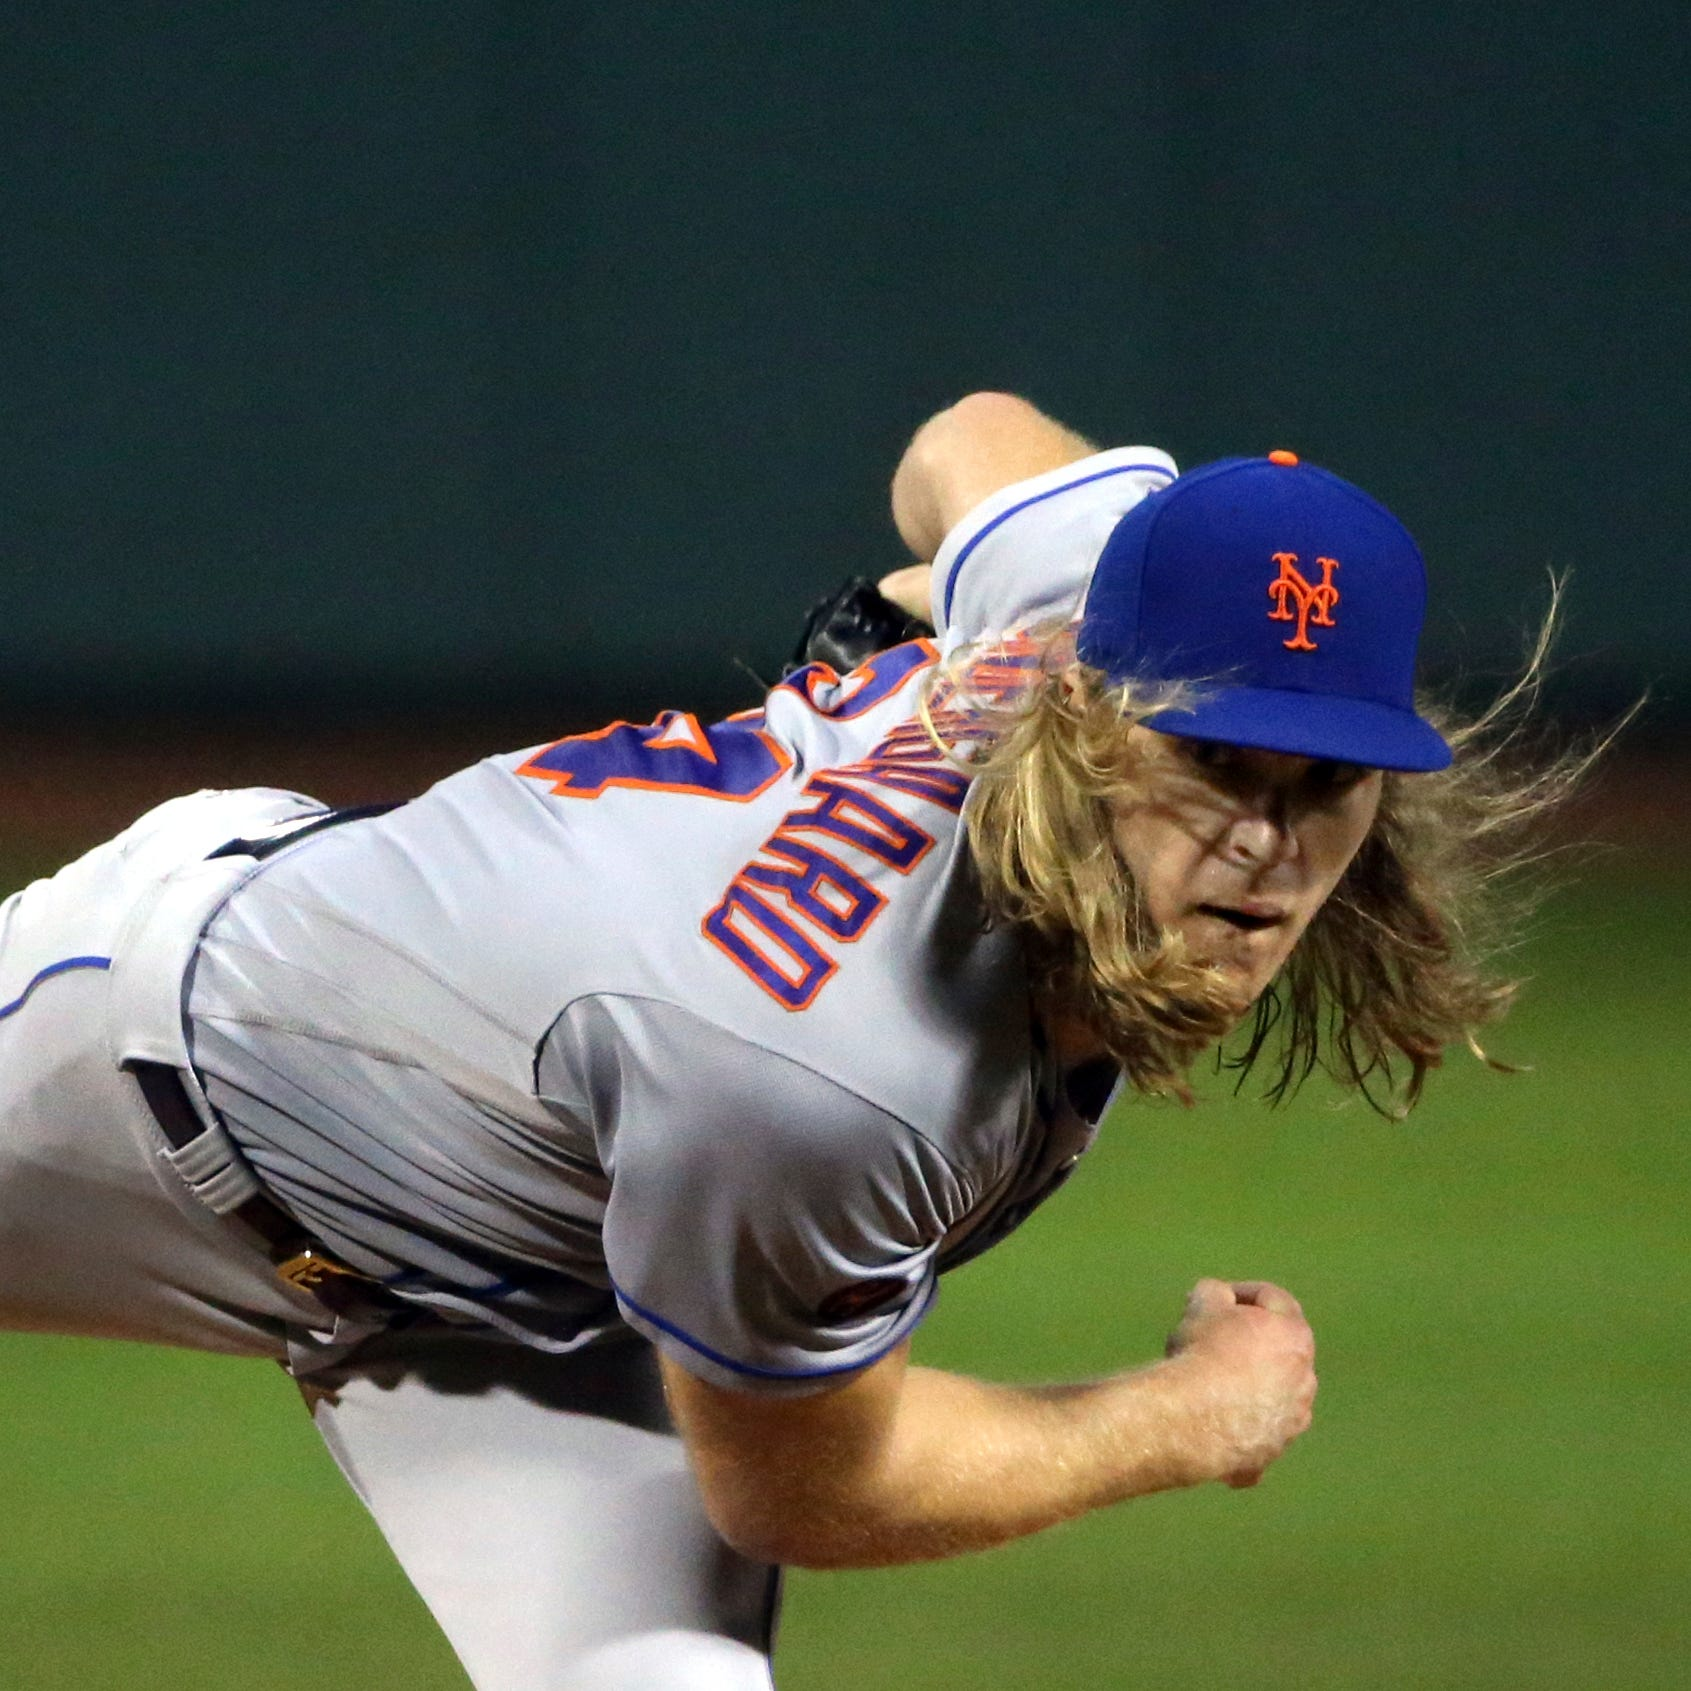 Noah Syndergaard ready to listen if NY Mets want to make a deal